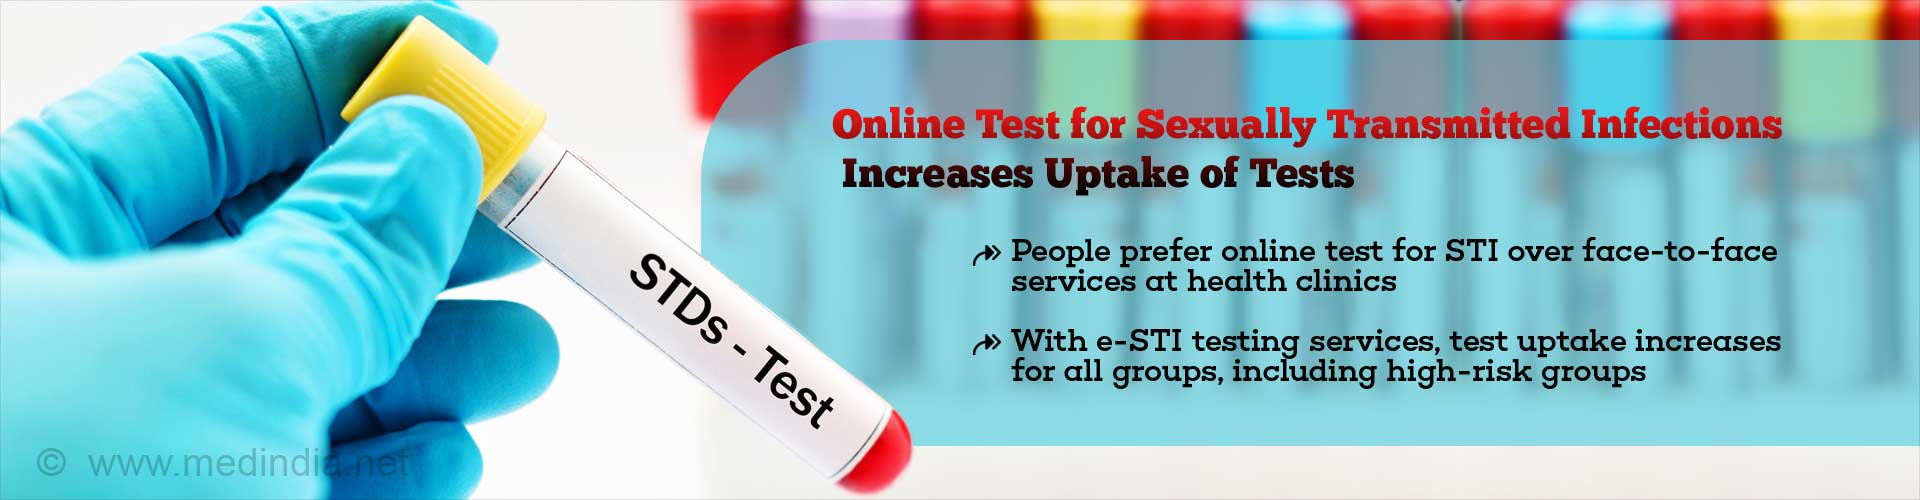 Online Test for Sexually Transmitted Infections Hikes Uptake